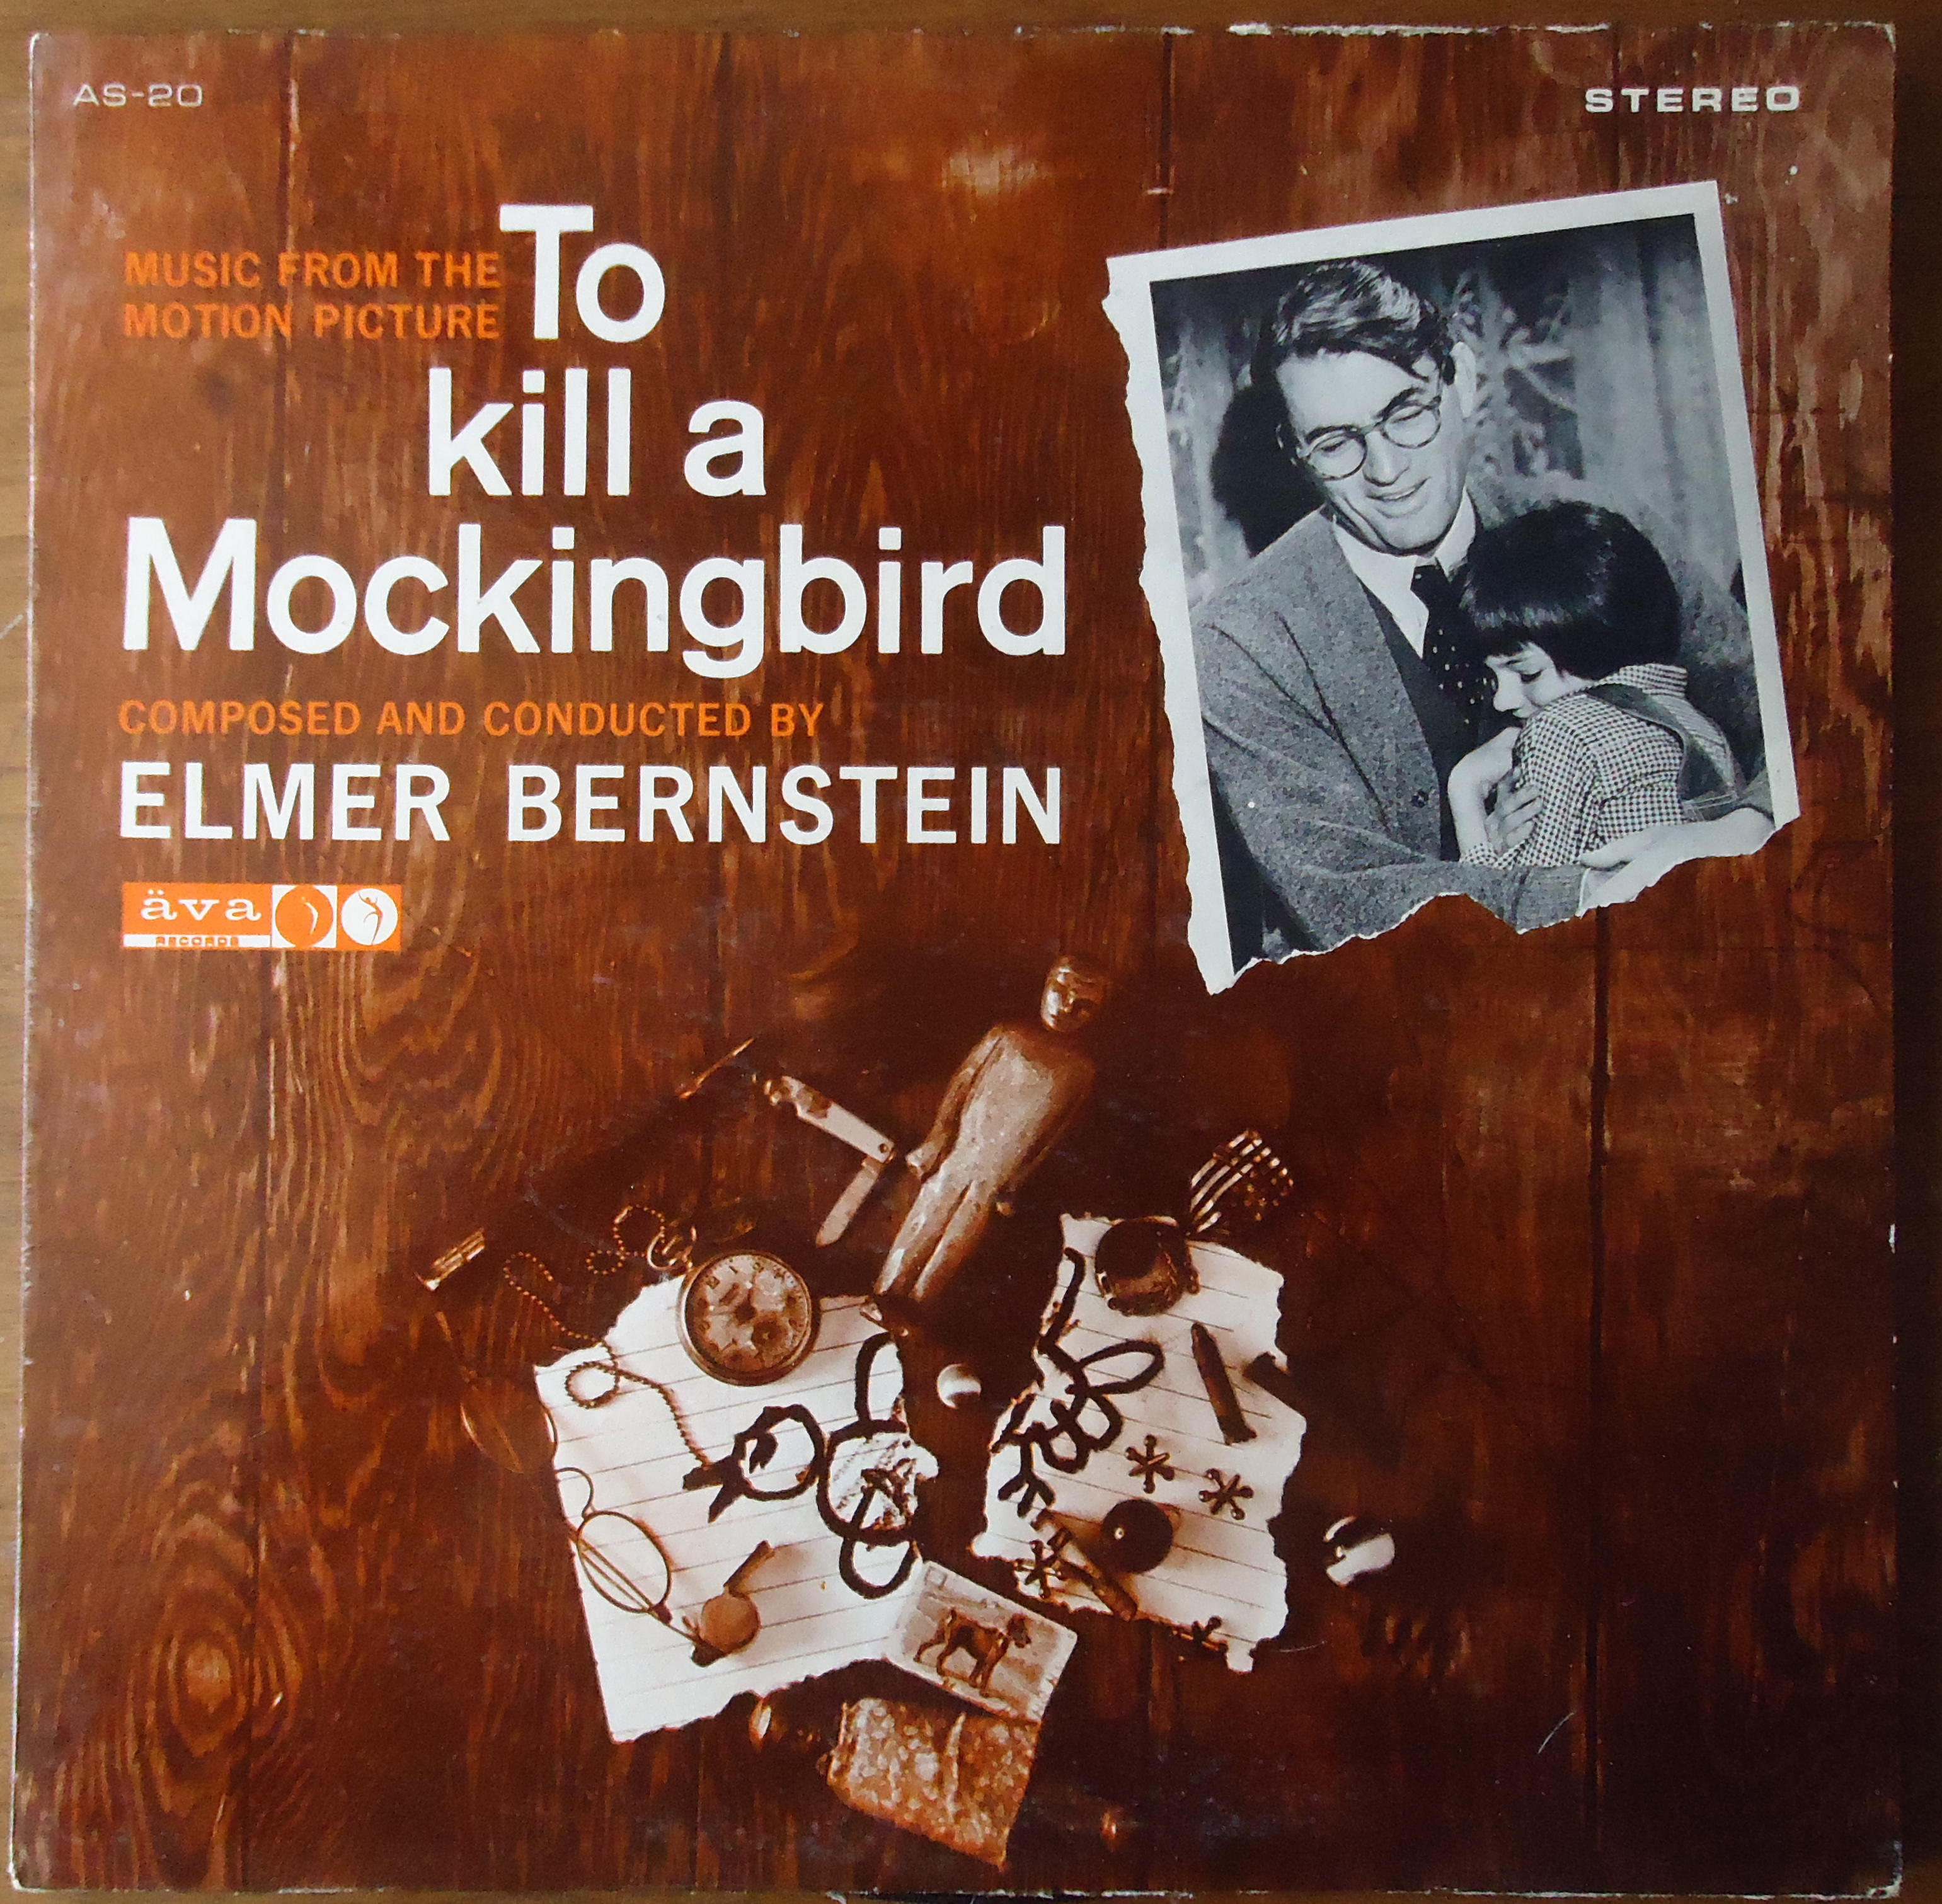 essay on setting of to kill a mockingbird Free essay: an analysis of the significance of the setting of to kill a mockingbird set in maycomb county, harper lee's novel, to kill a mockingbird, is set.